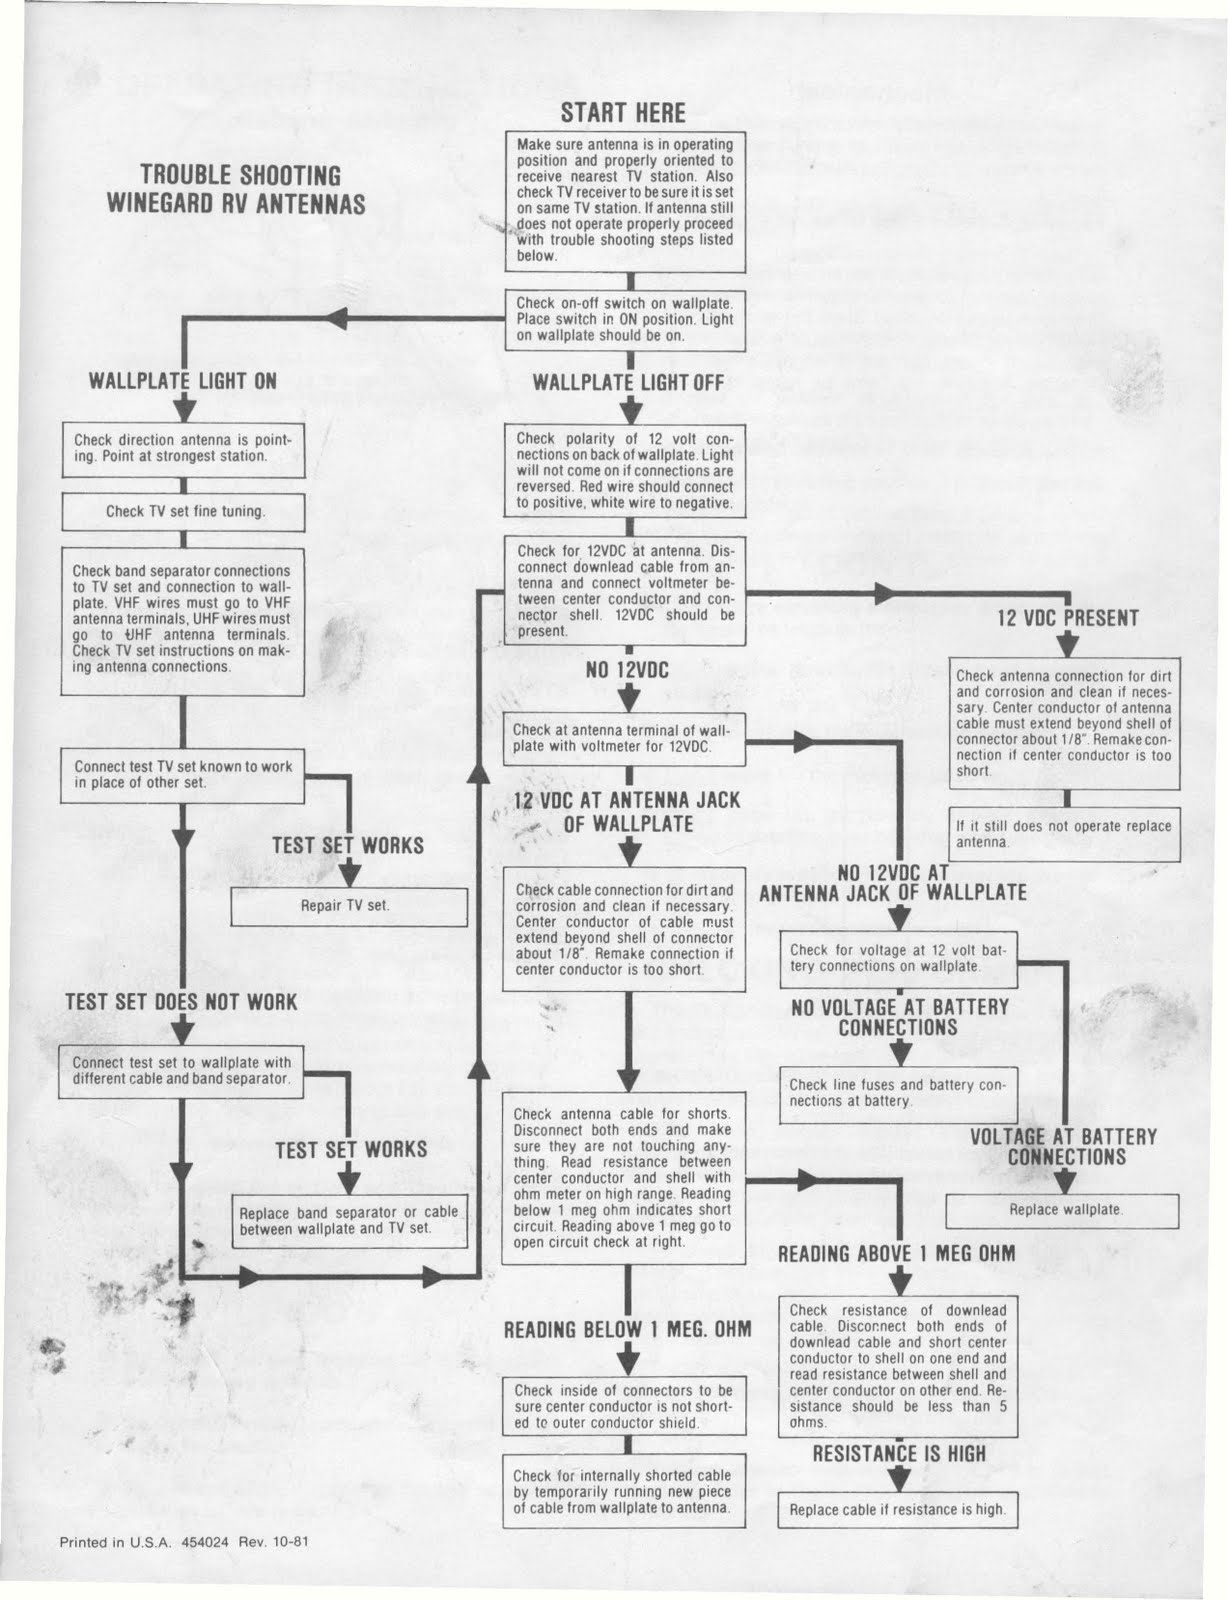 winegard rv satellite wiring diagram inside winegard rv antenna wiring diagram 1983 fleetwood pace arrow owners manuals: winegard rv tv antenna owners and operation manual